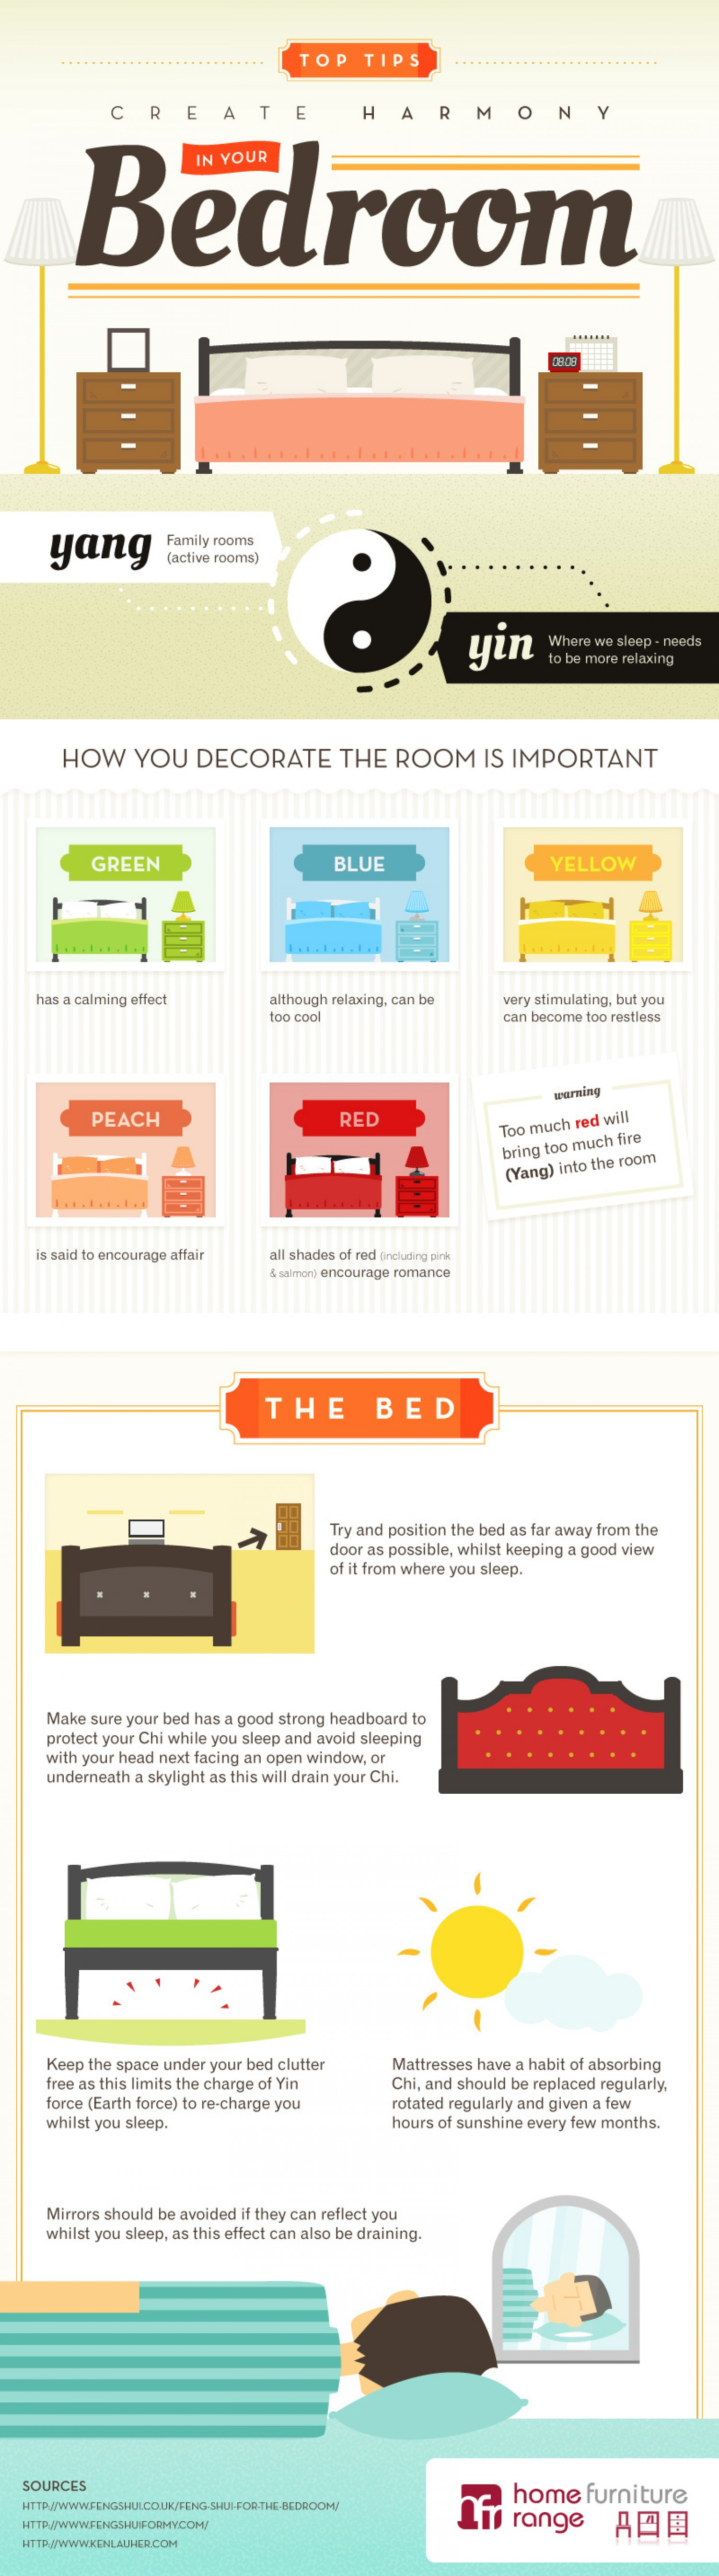 Cool How To Feng Shui Your Bedroom | Visual.ly regarding Bedroom Feng Shui